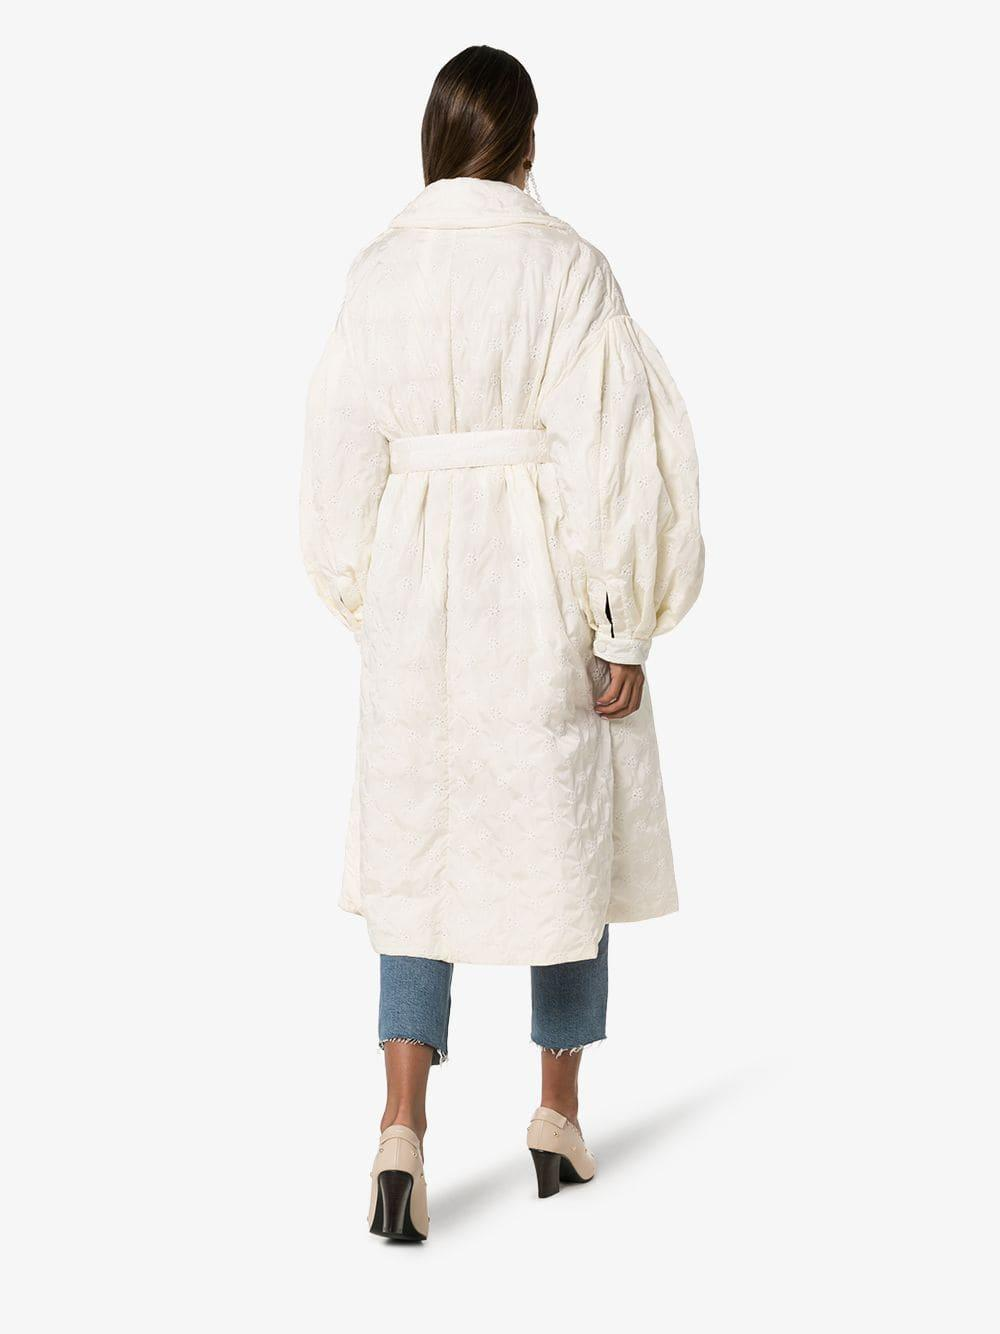 248c34a06 Women's White X Simone Rocha Dinah Belted Trench Coat